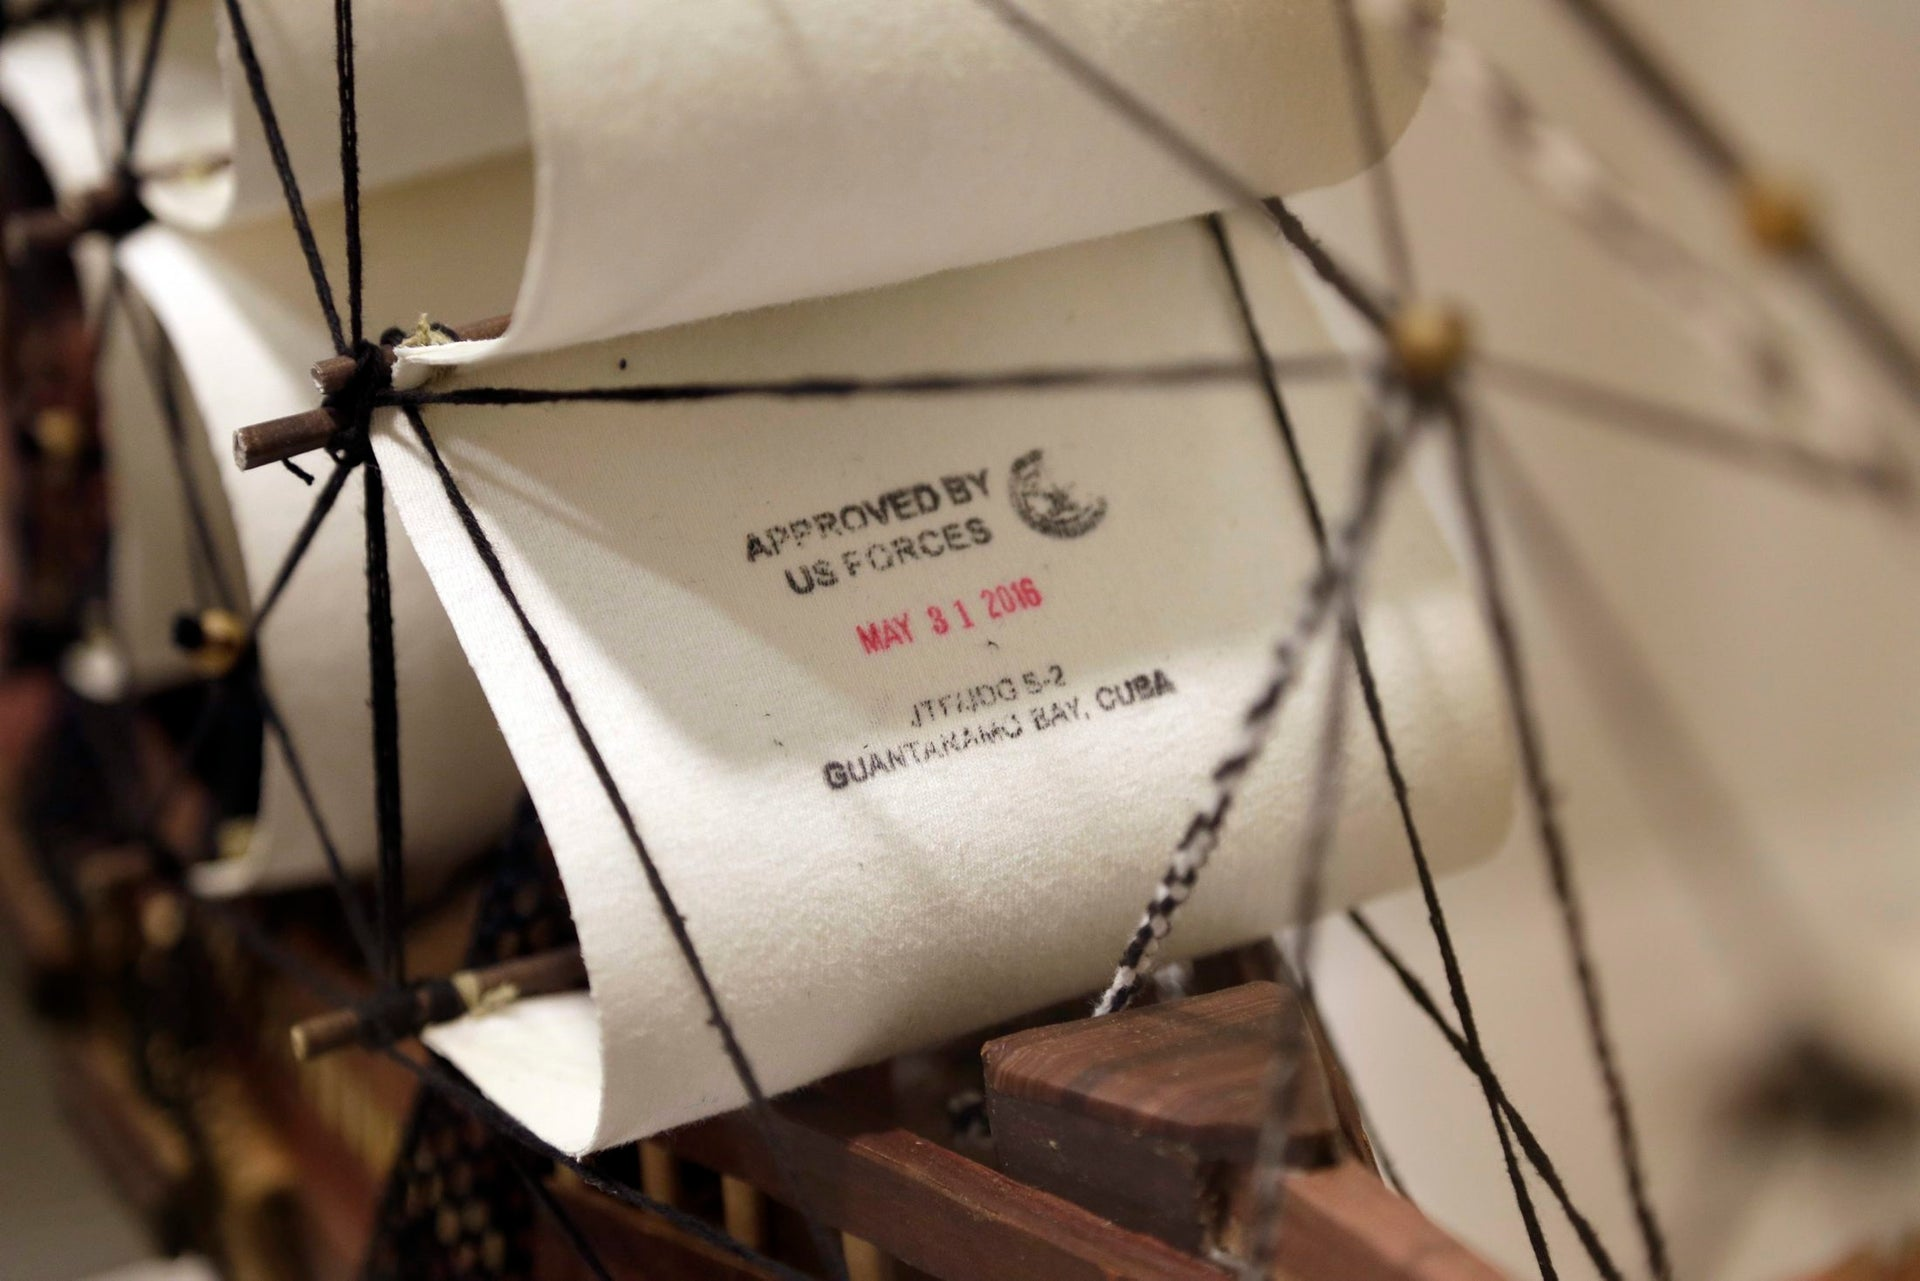 "A sculpture of ship is stamped ""Approved by US Forces"" at an exhibition at the John Jay College of Criminal Justice of an artwork by Guantanamo detainees, November 27, 2017."